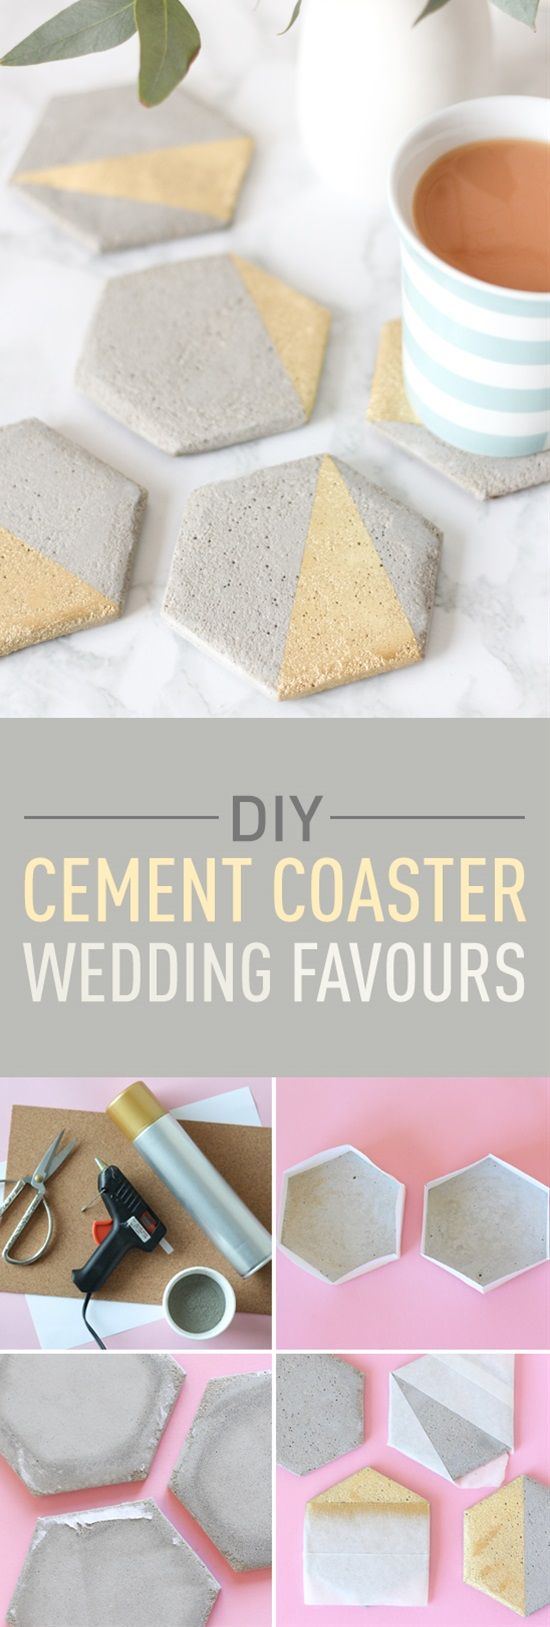 How to make your own cement coaster wedding favours plywood